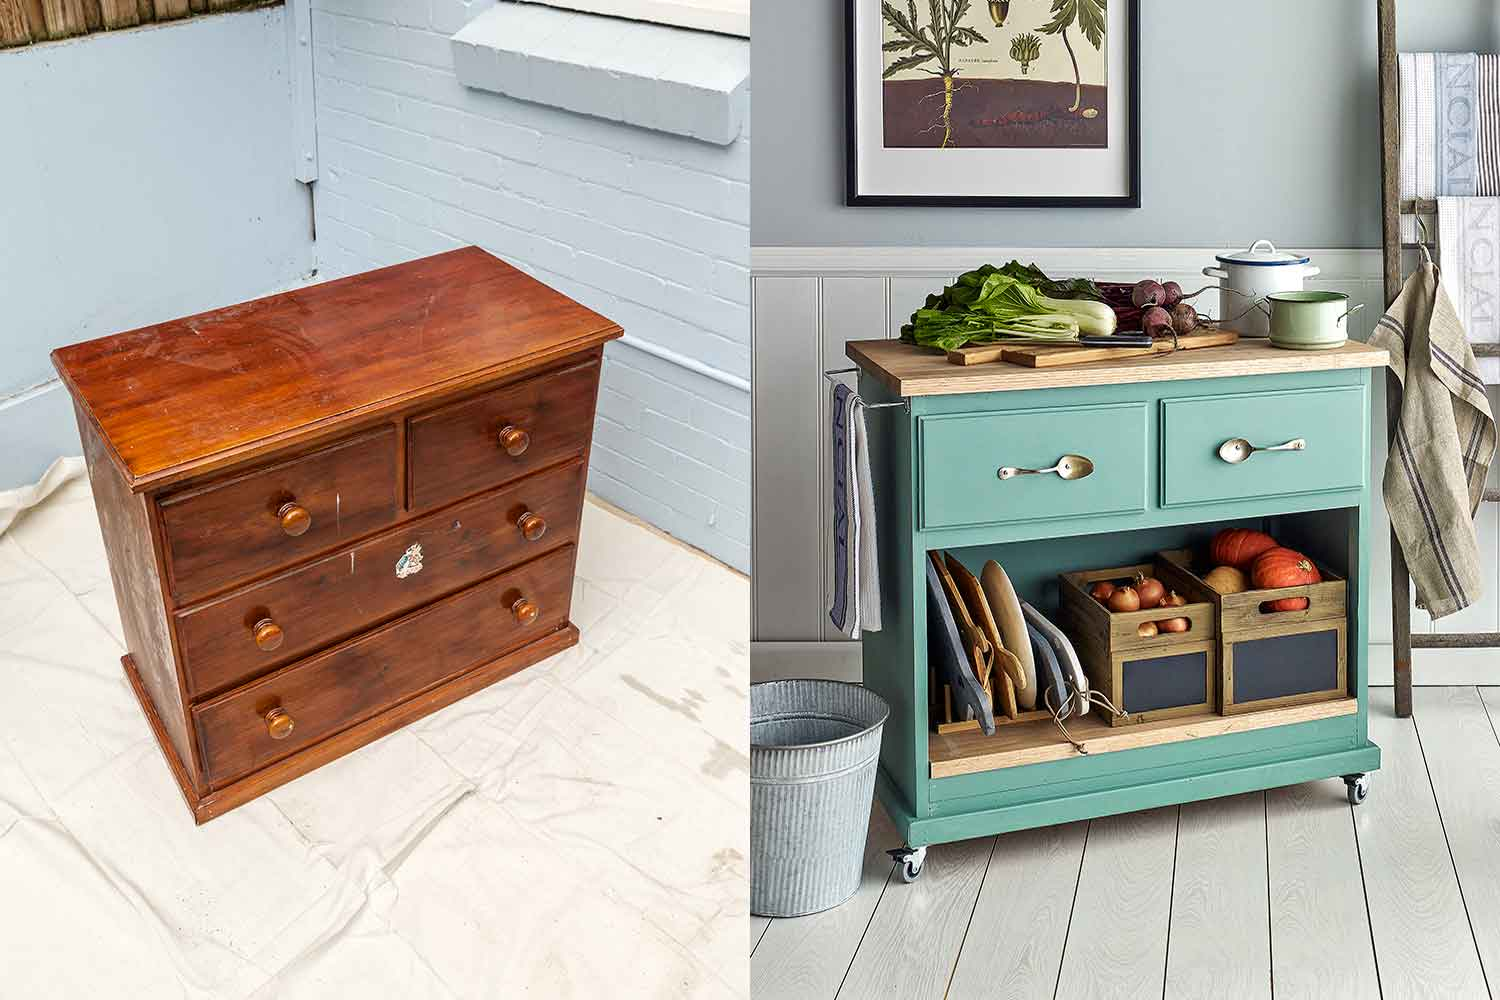 How To Turn An Old Dresser Into An Island Bench Better Homes And Gardens